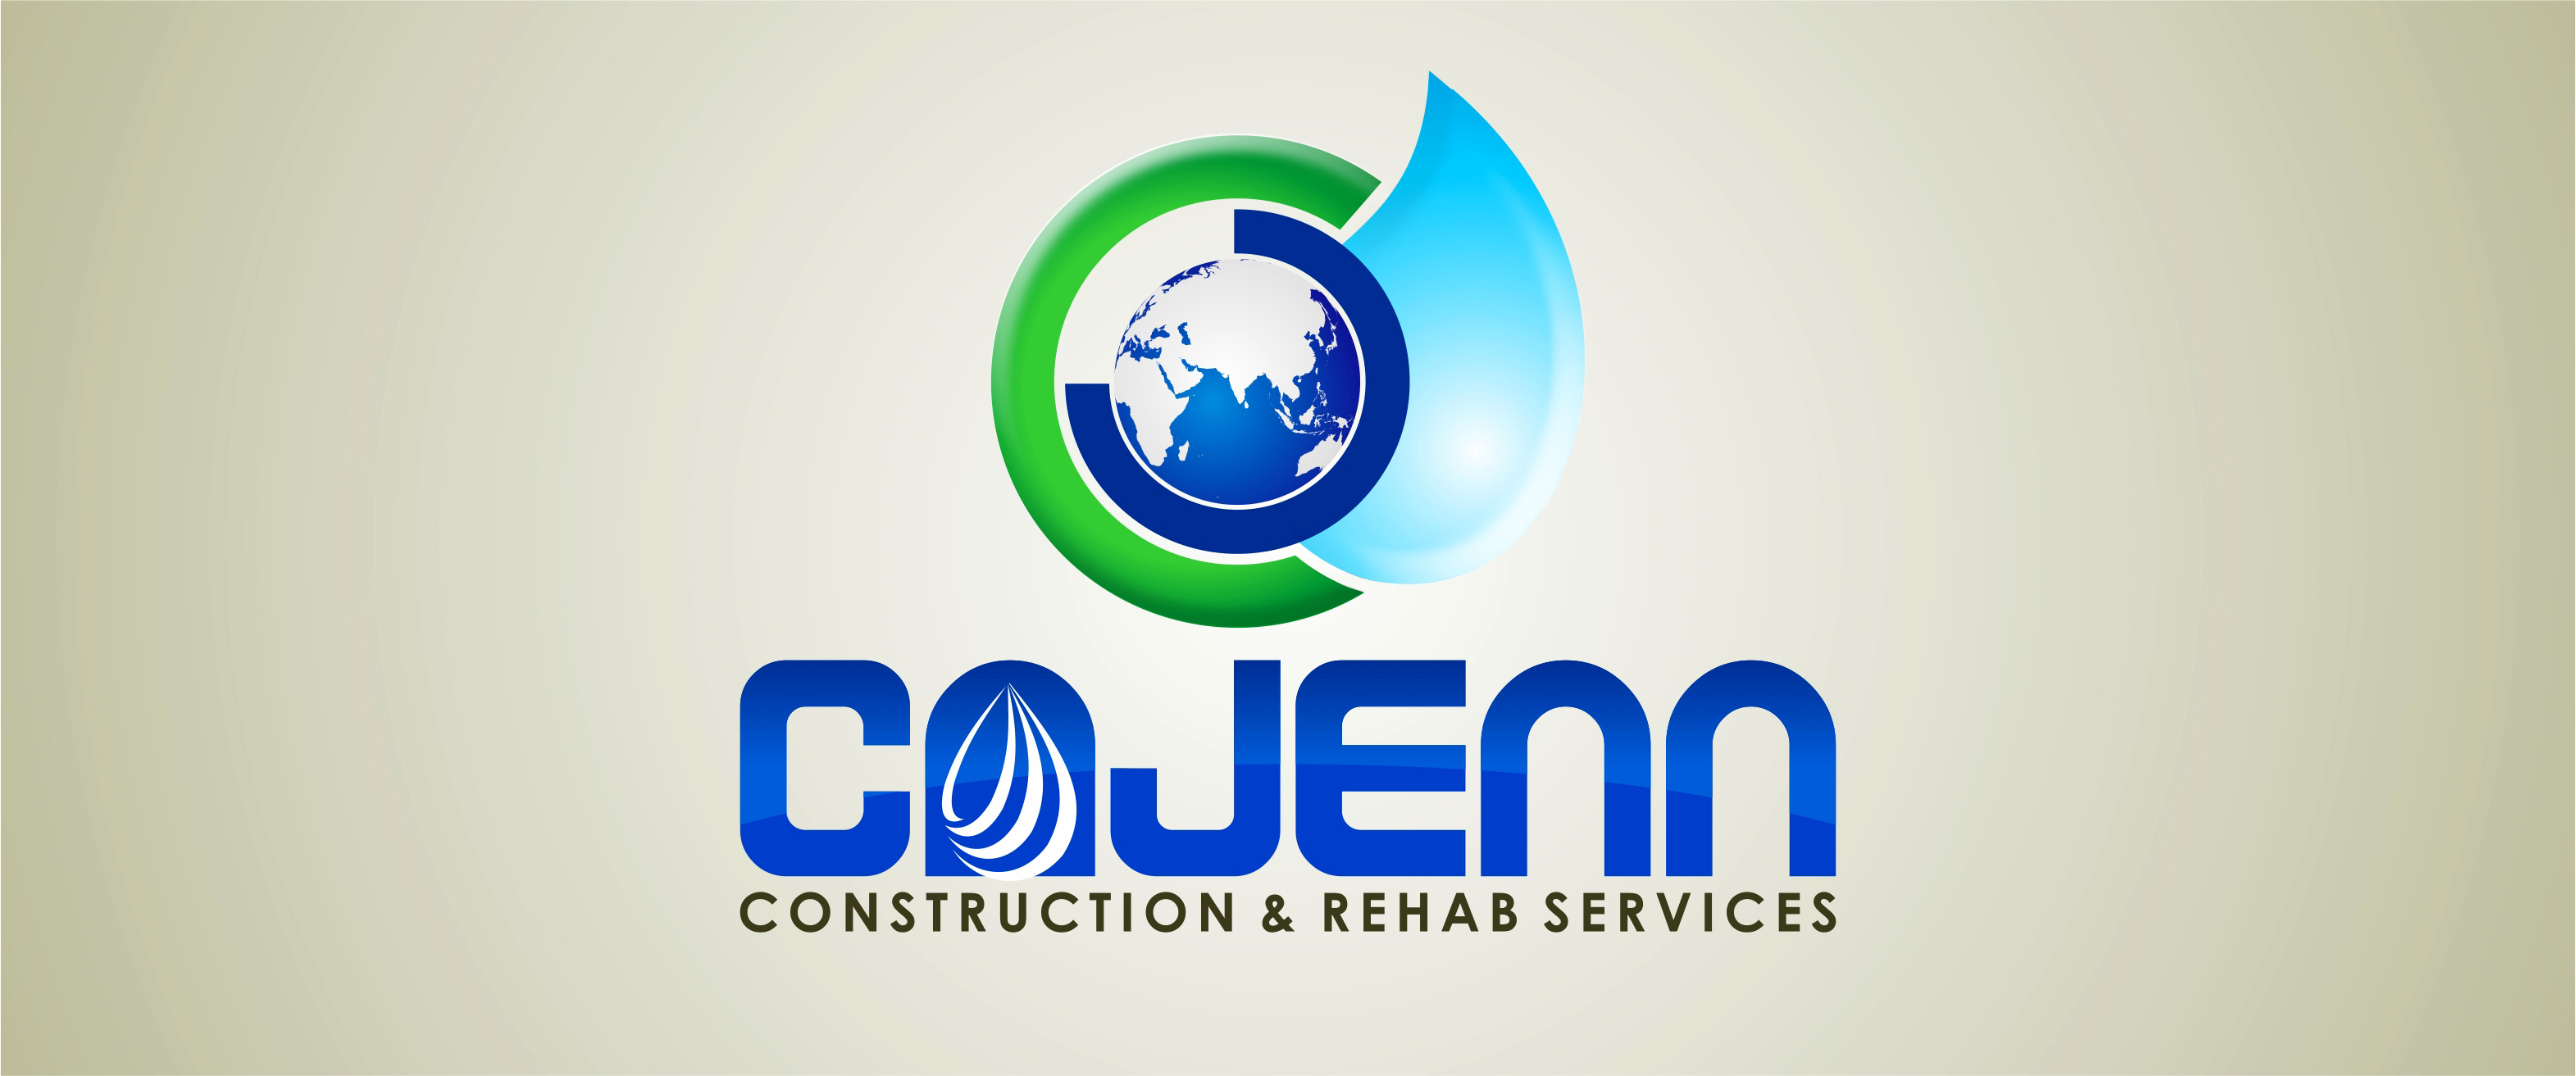 Logo Design by Private User - Entry No. 232 in the Logo Design Contest New Logo Design for CaJenn Construction & Rehab Services.